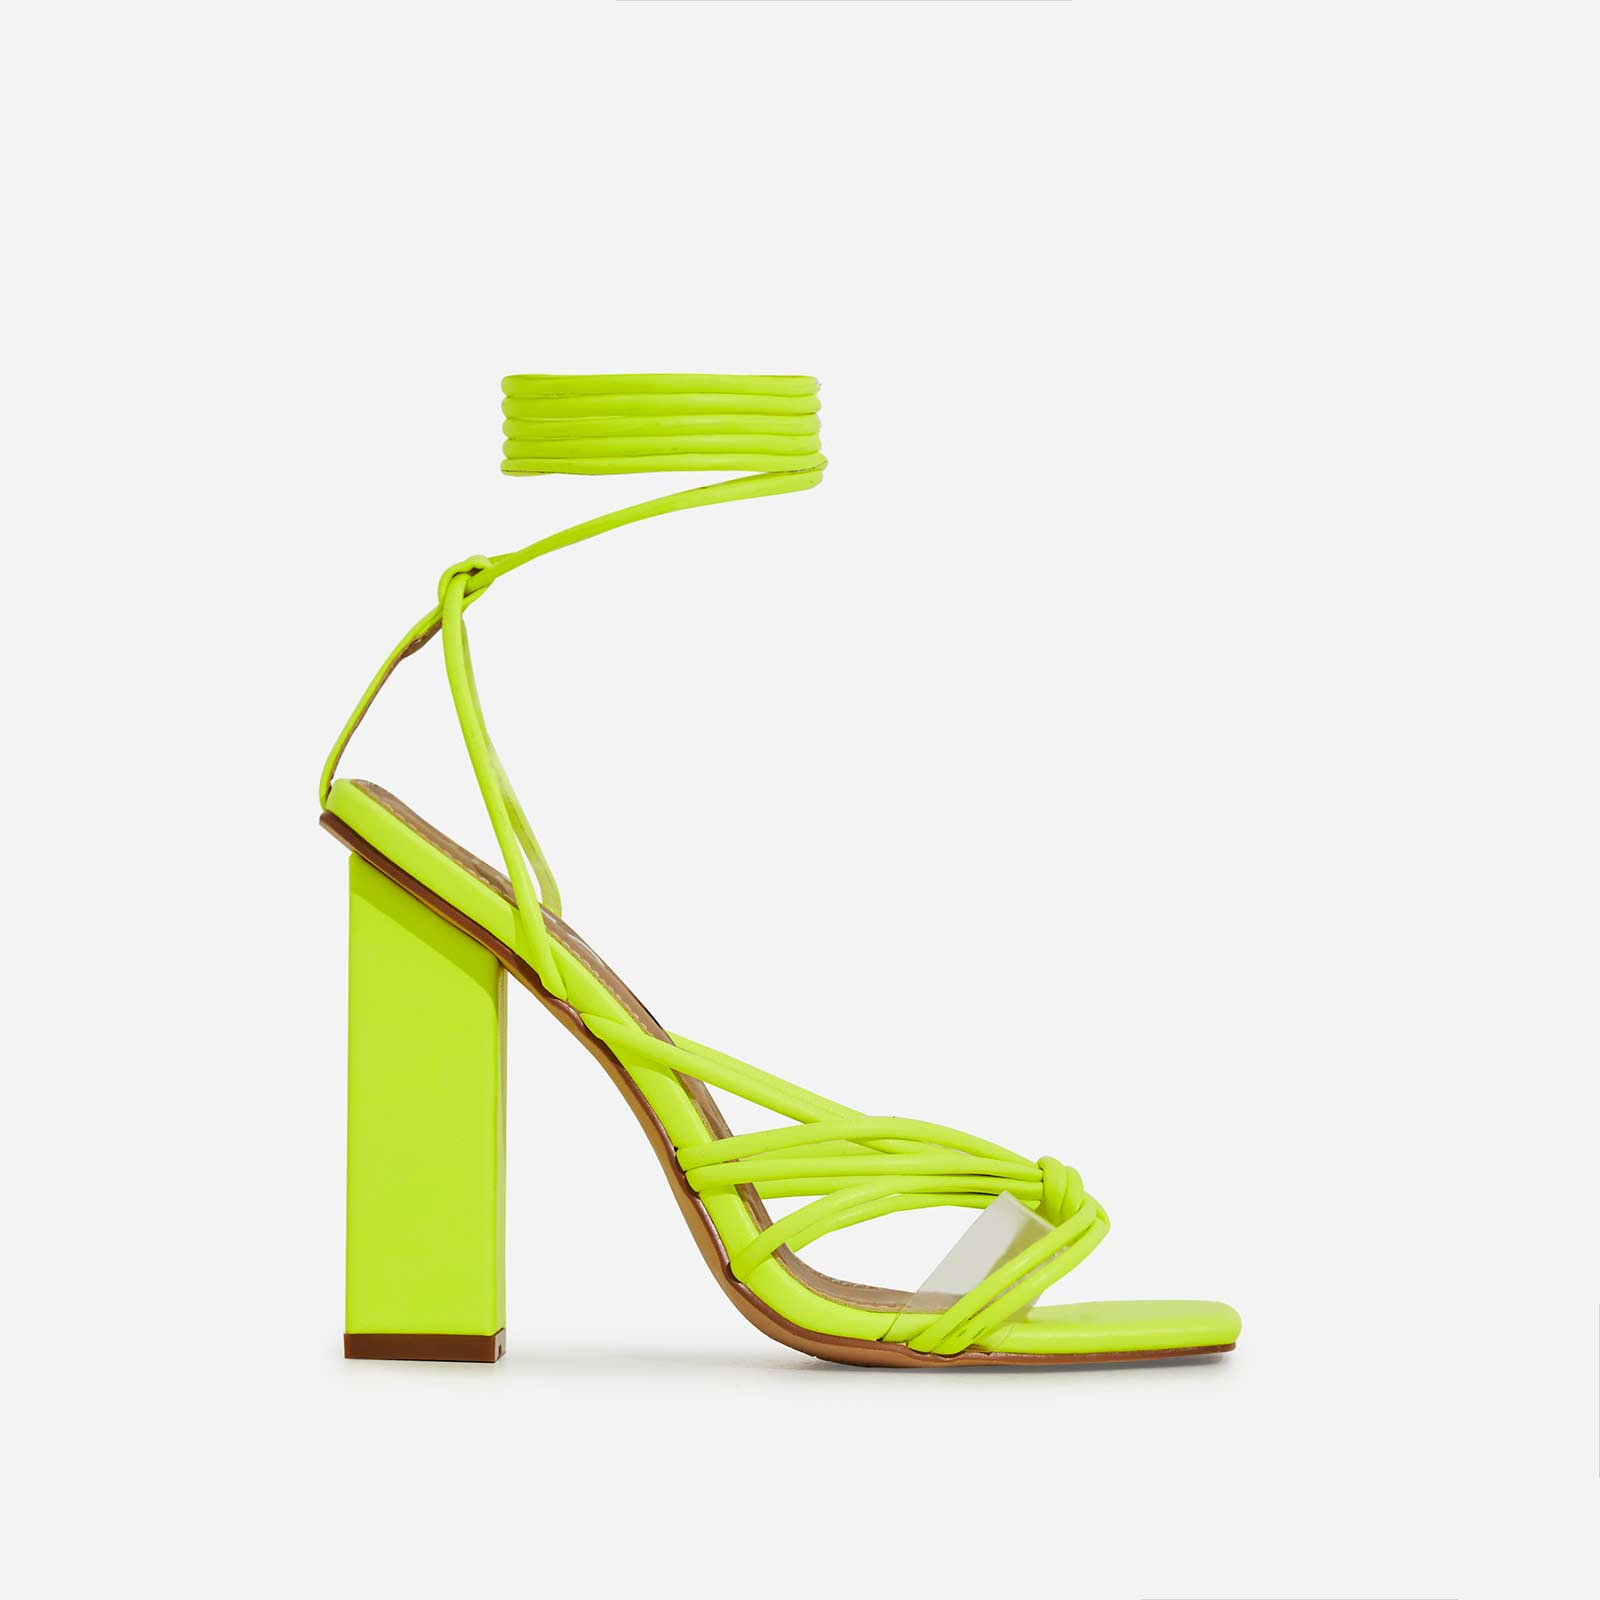 Neima Lace Up Square Toe Clear Perspex Block Heel In Lime Green Faux Leather